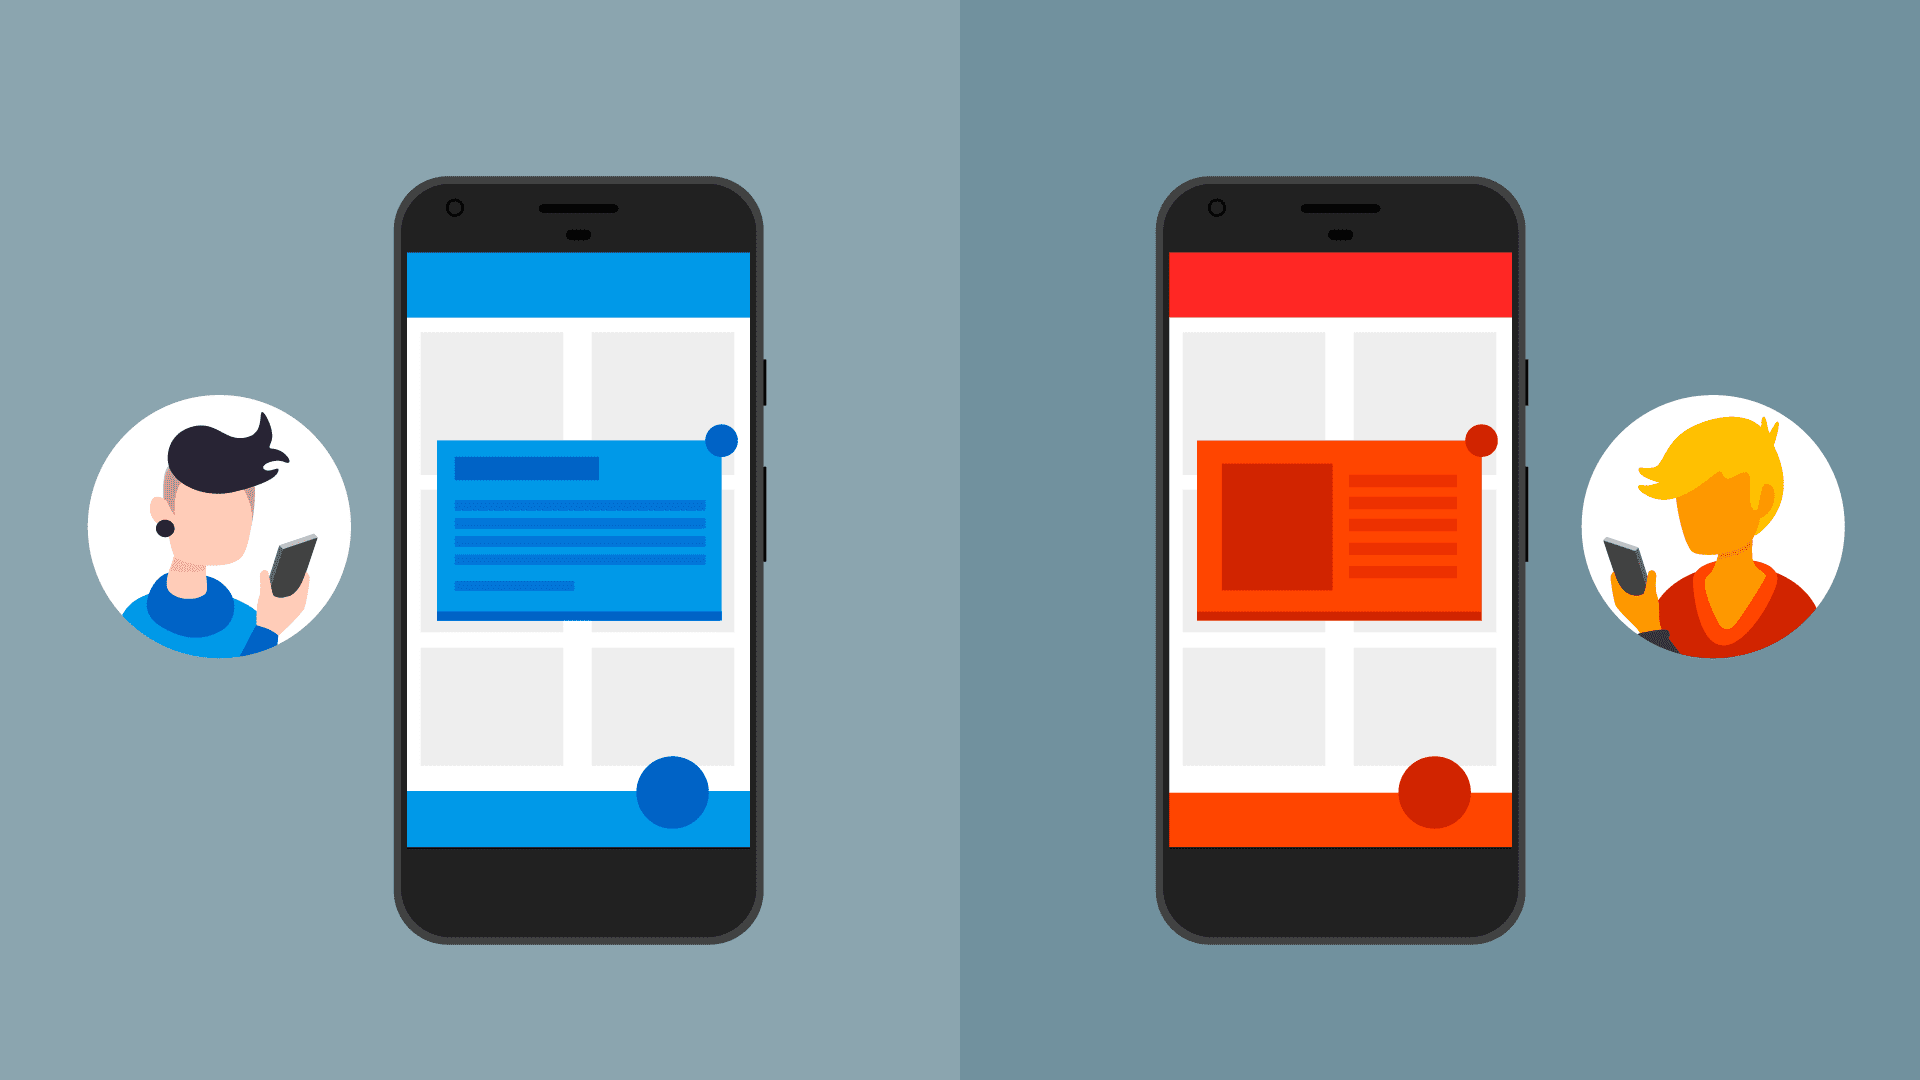 Two in-app messages with different styles